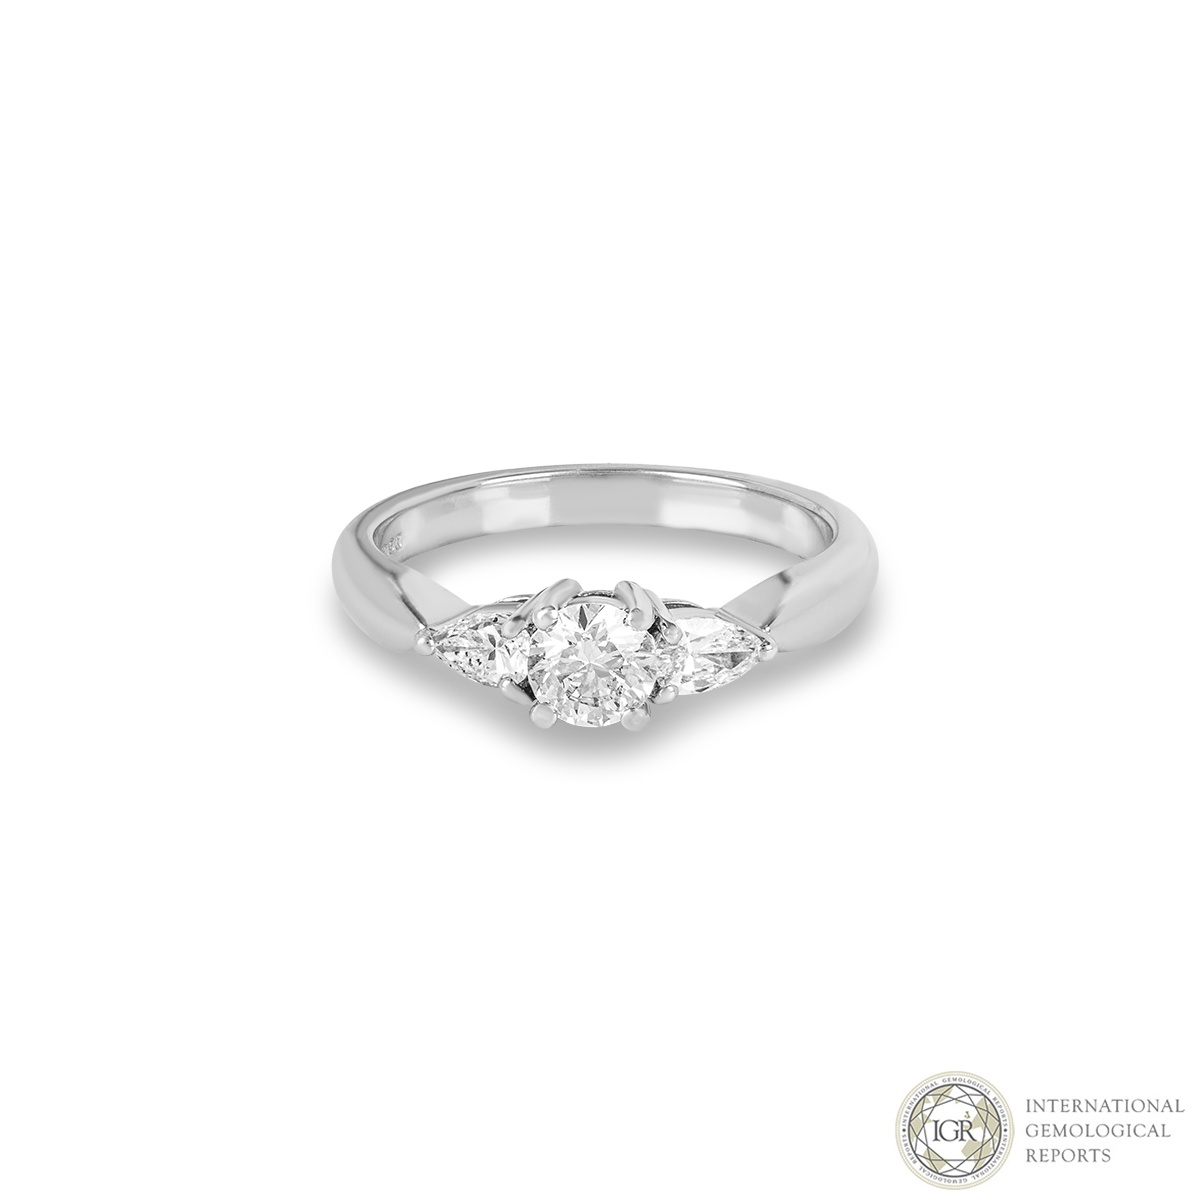 A Three Stone Diamond Ring In Platinum 0.37ct G/SI2